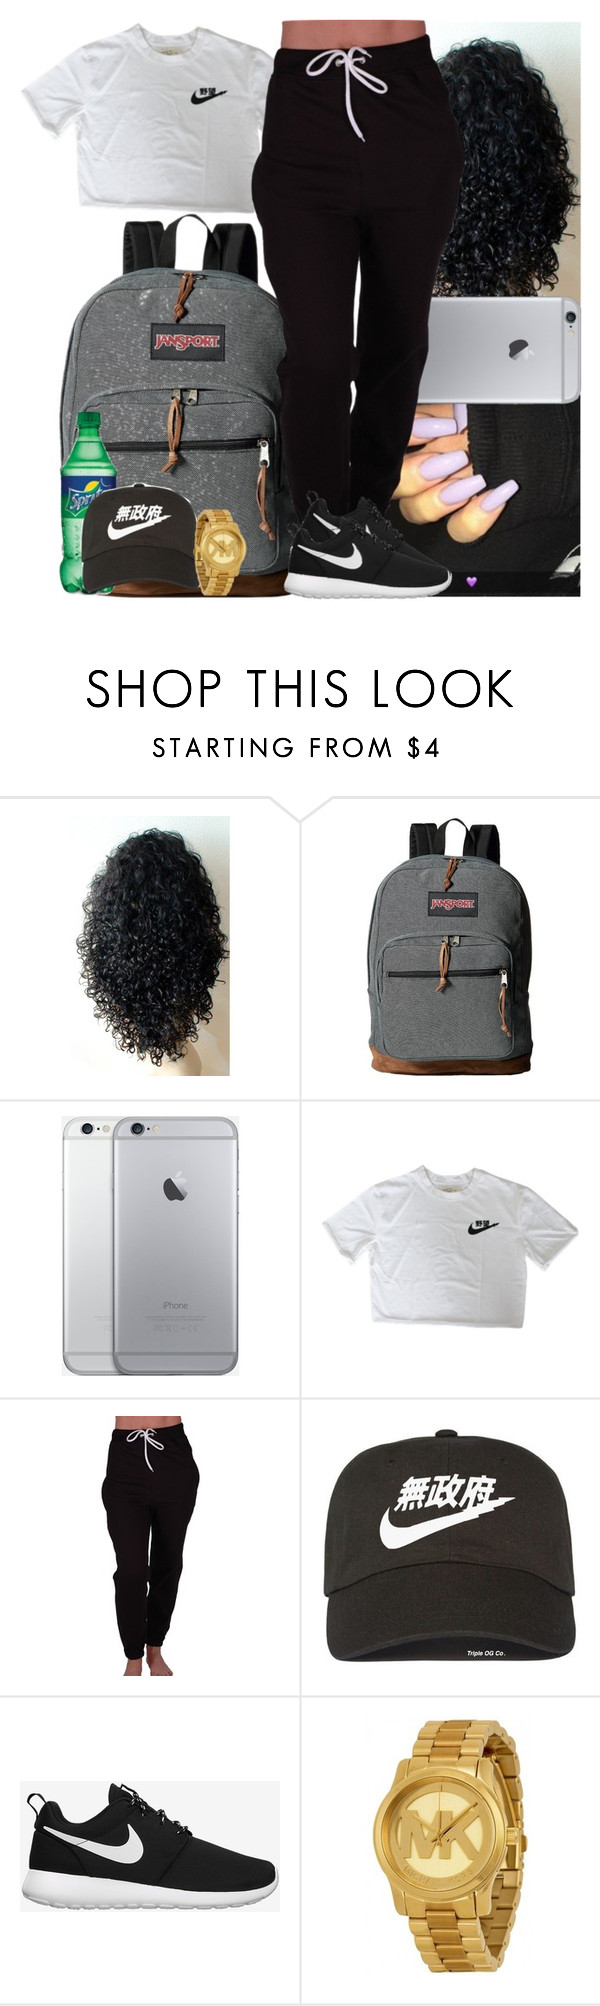 """""""◼️◻️◼️◻️"""" by msixo ❤ liked on Polyvore featuring JanSport, NIKE and Michael Kors"""